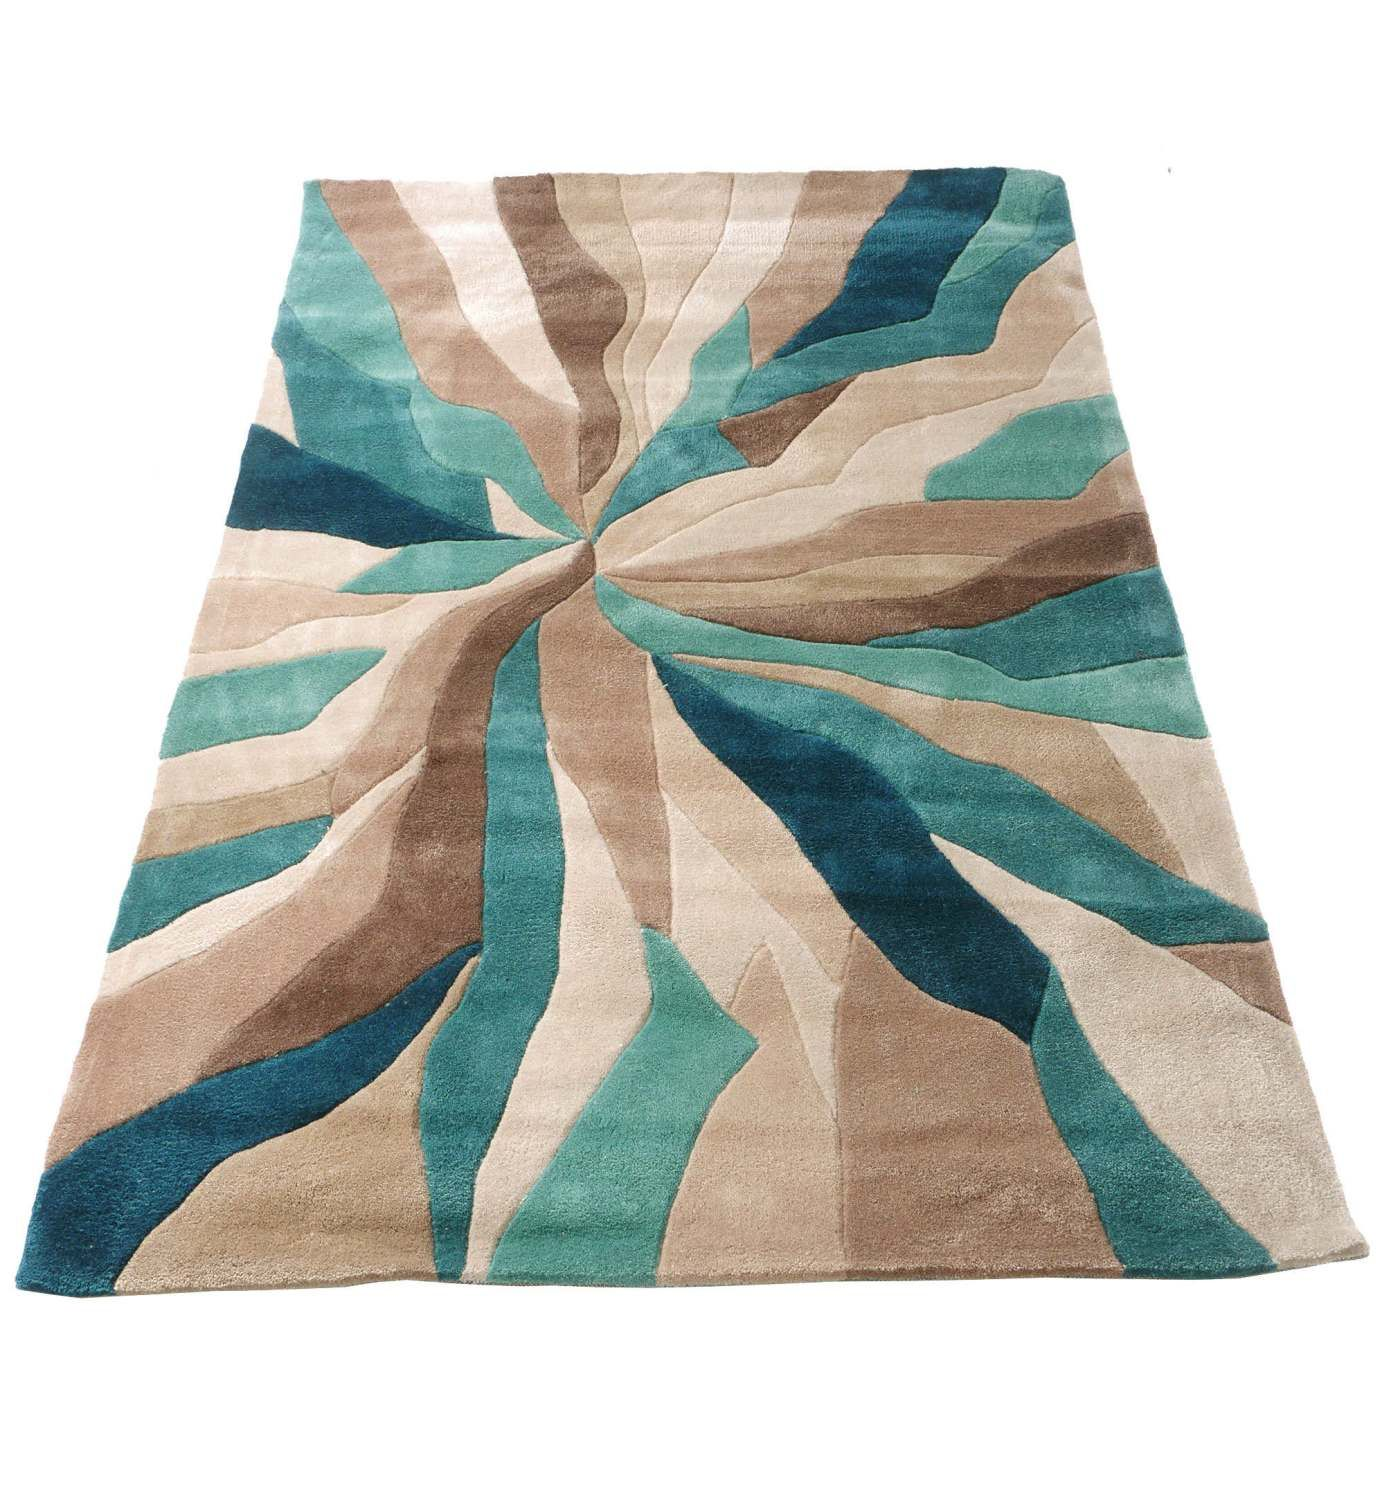 nebula rug in beige, teal blue and brown | neat stuff | pinterest